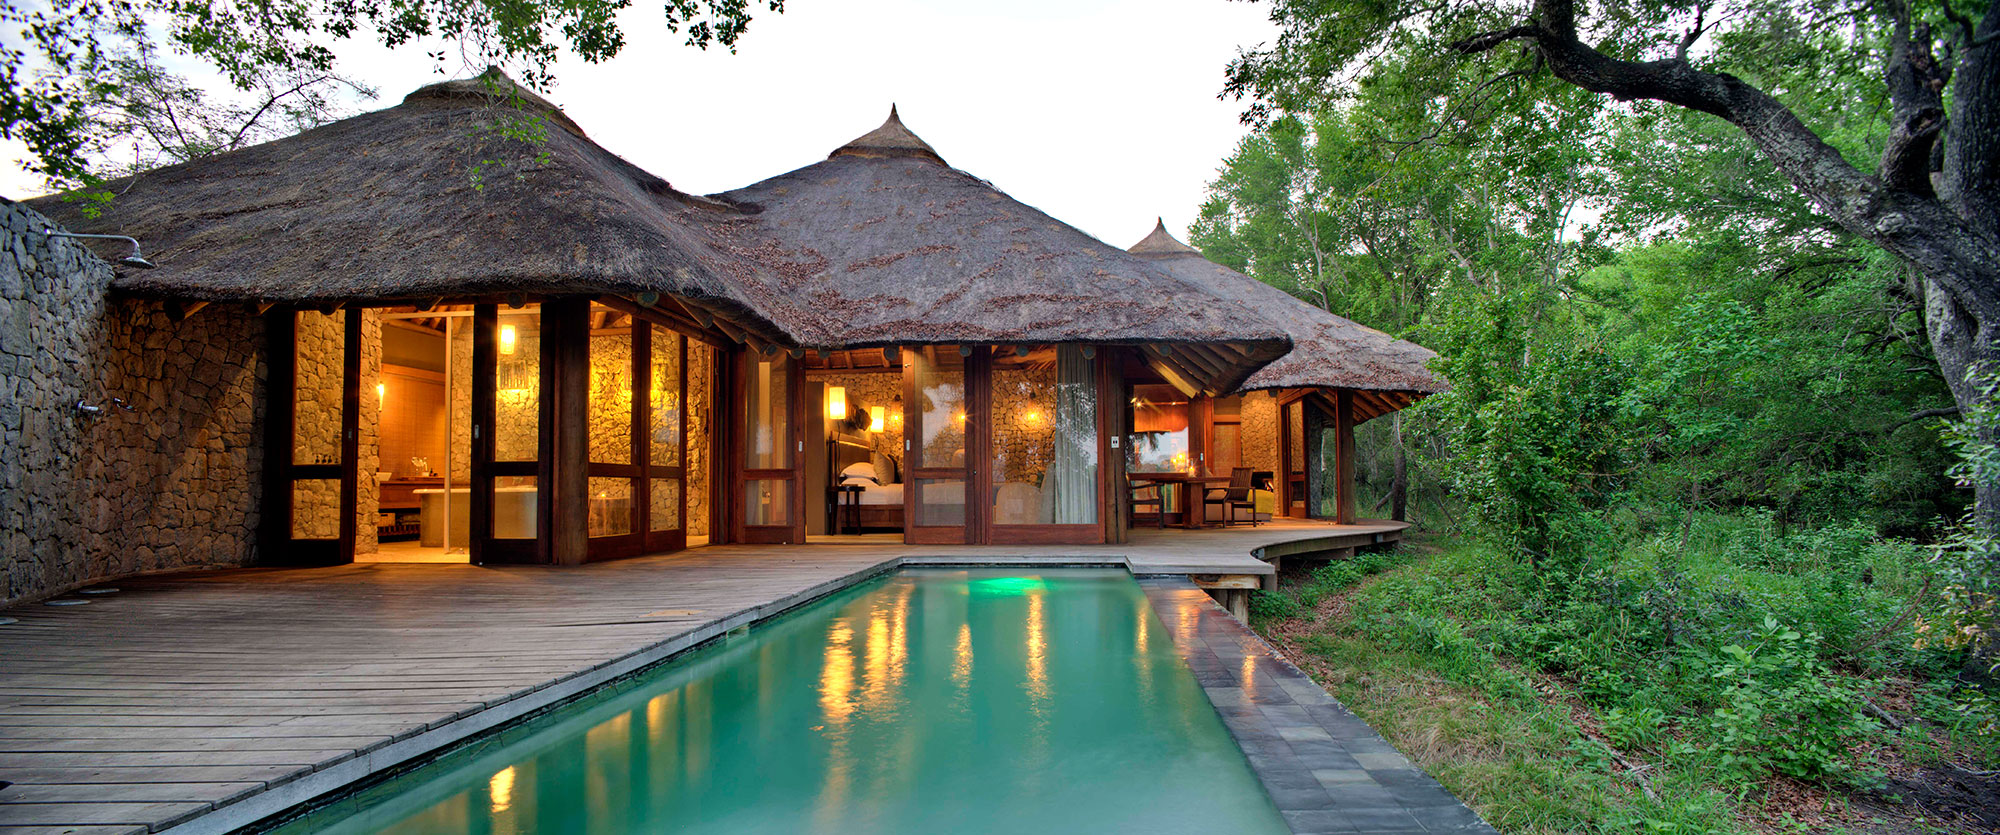 South Africa: Luxury Safari and Cape Town Package - 5-Star Kruger Safari Lodge